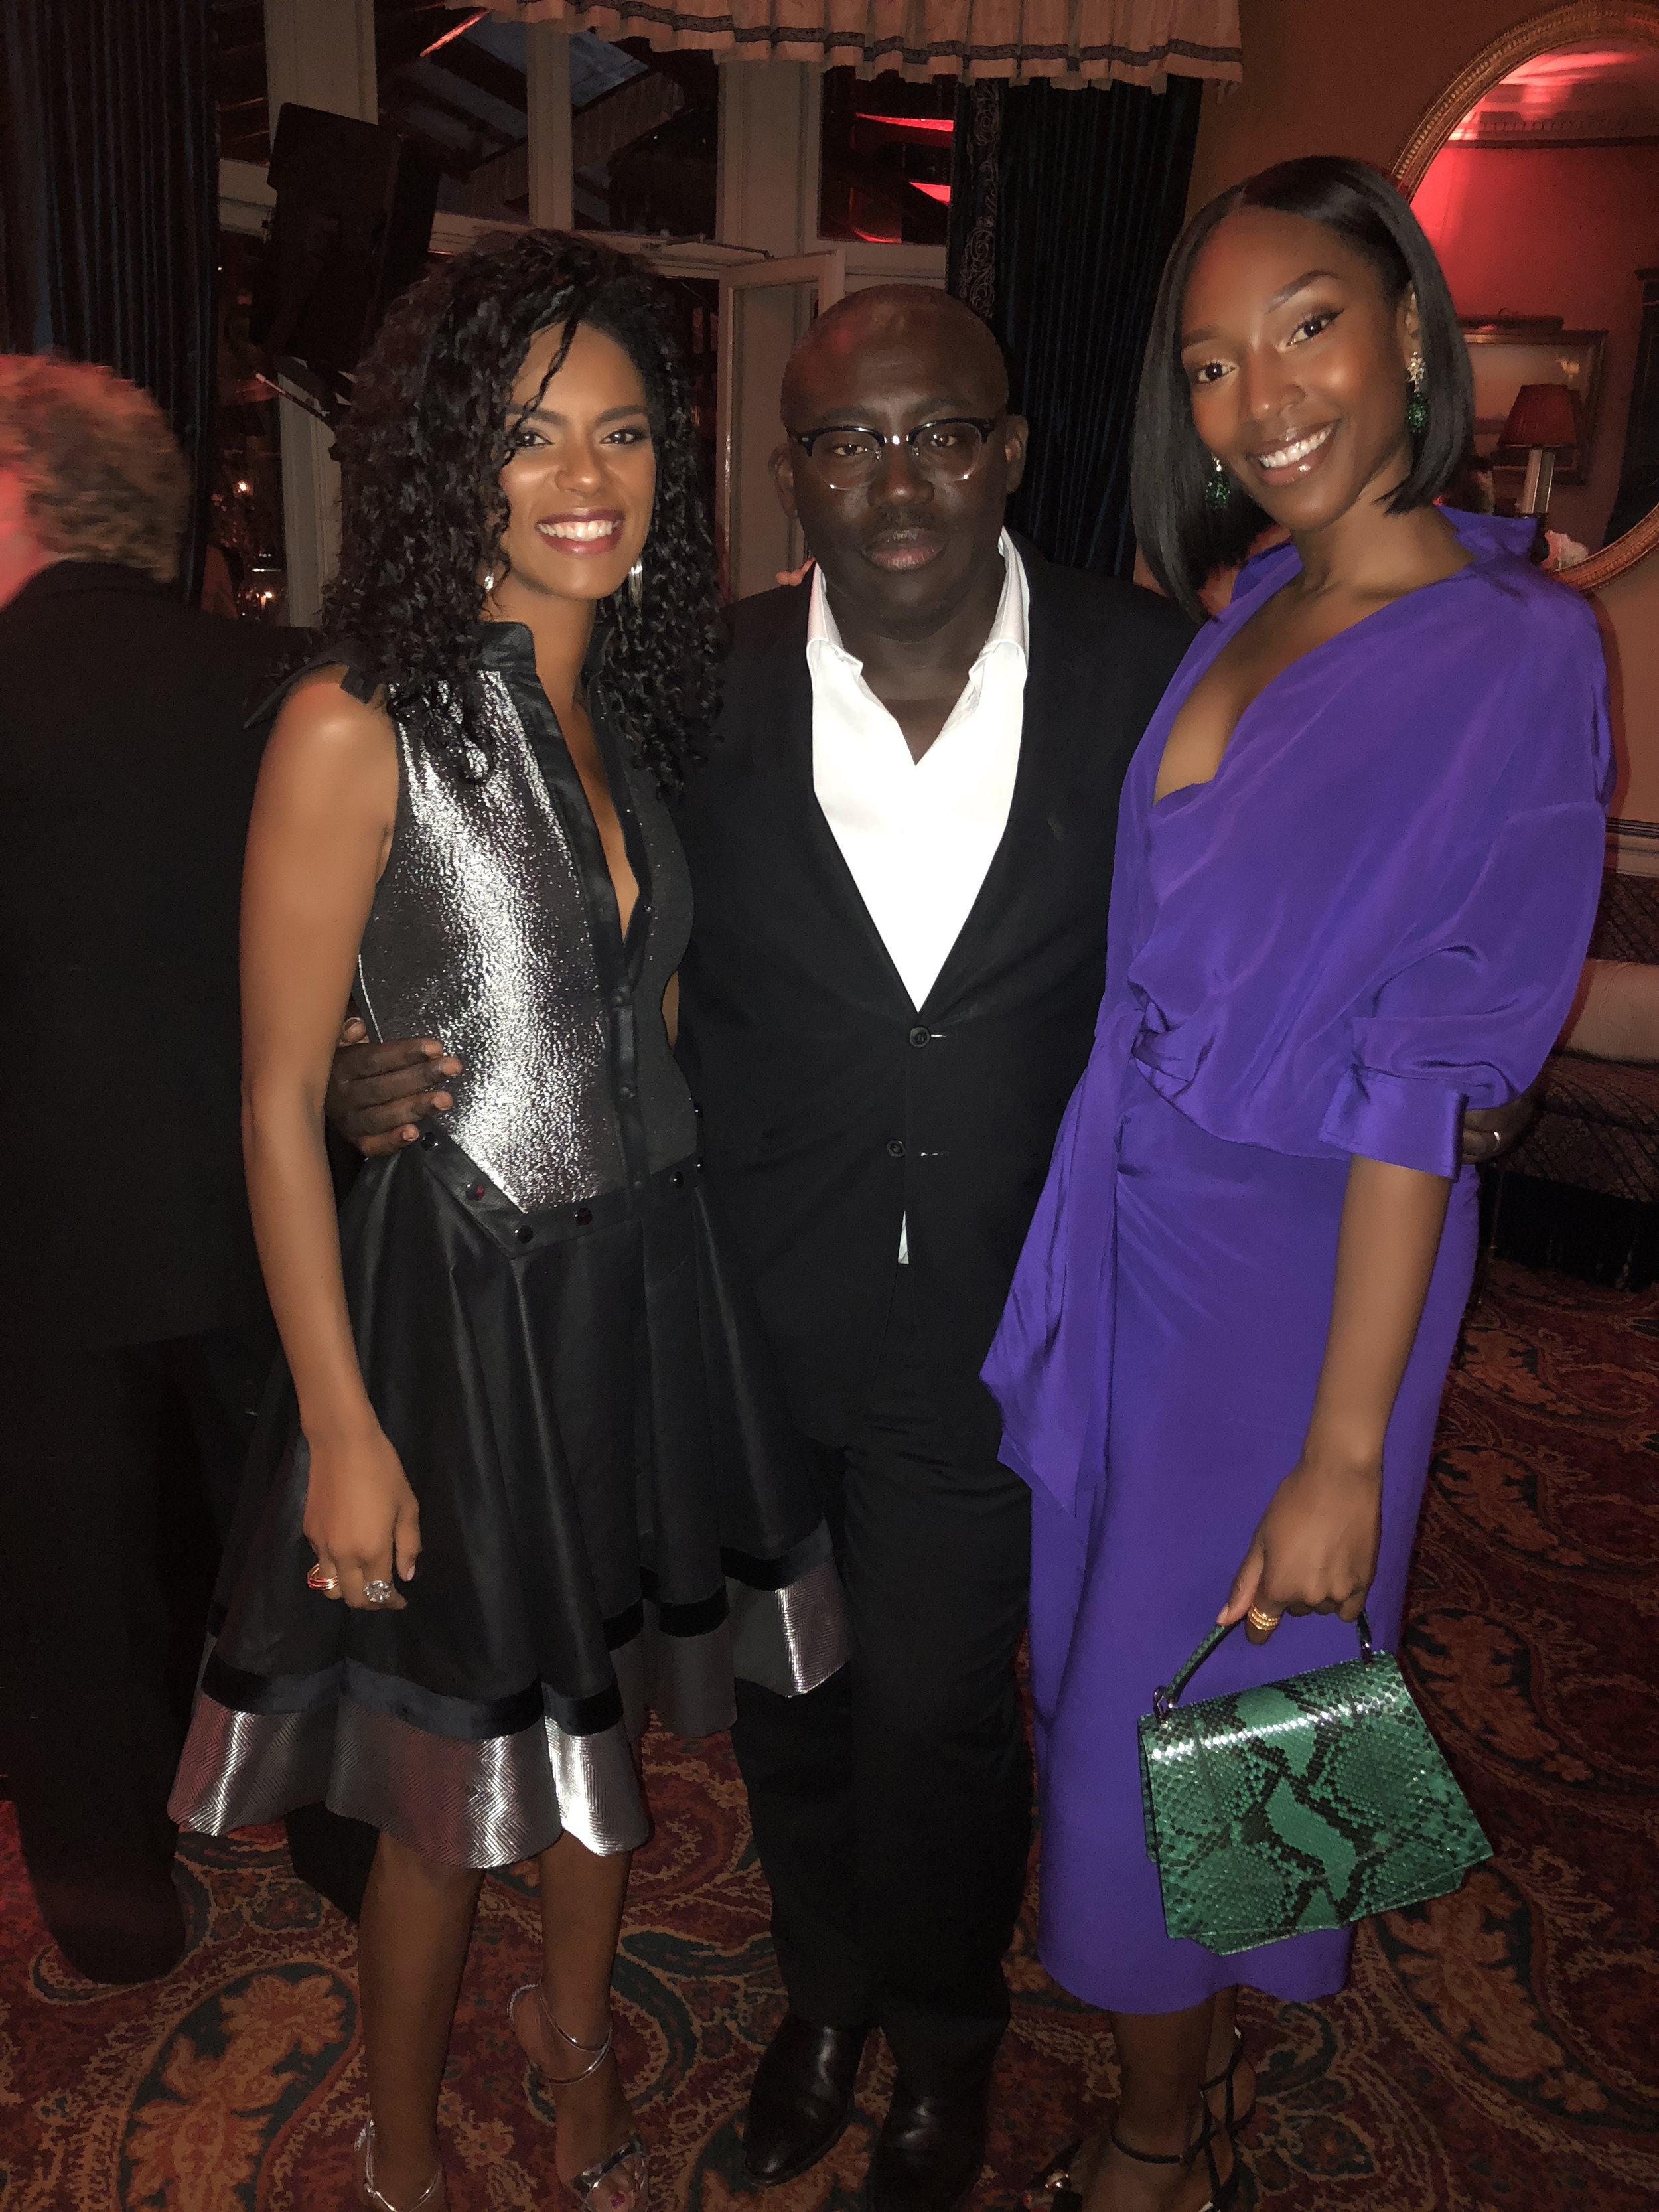 At the Vogue party with Vanessa Kingori and Edward Enninful